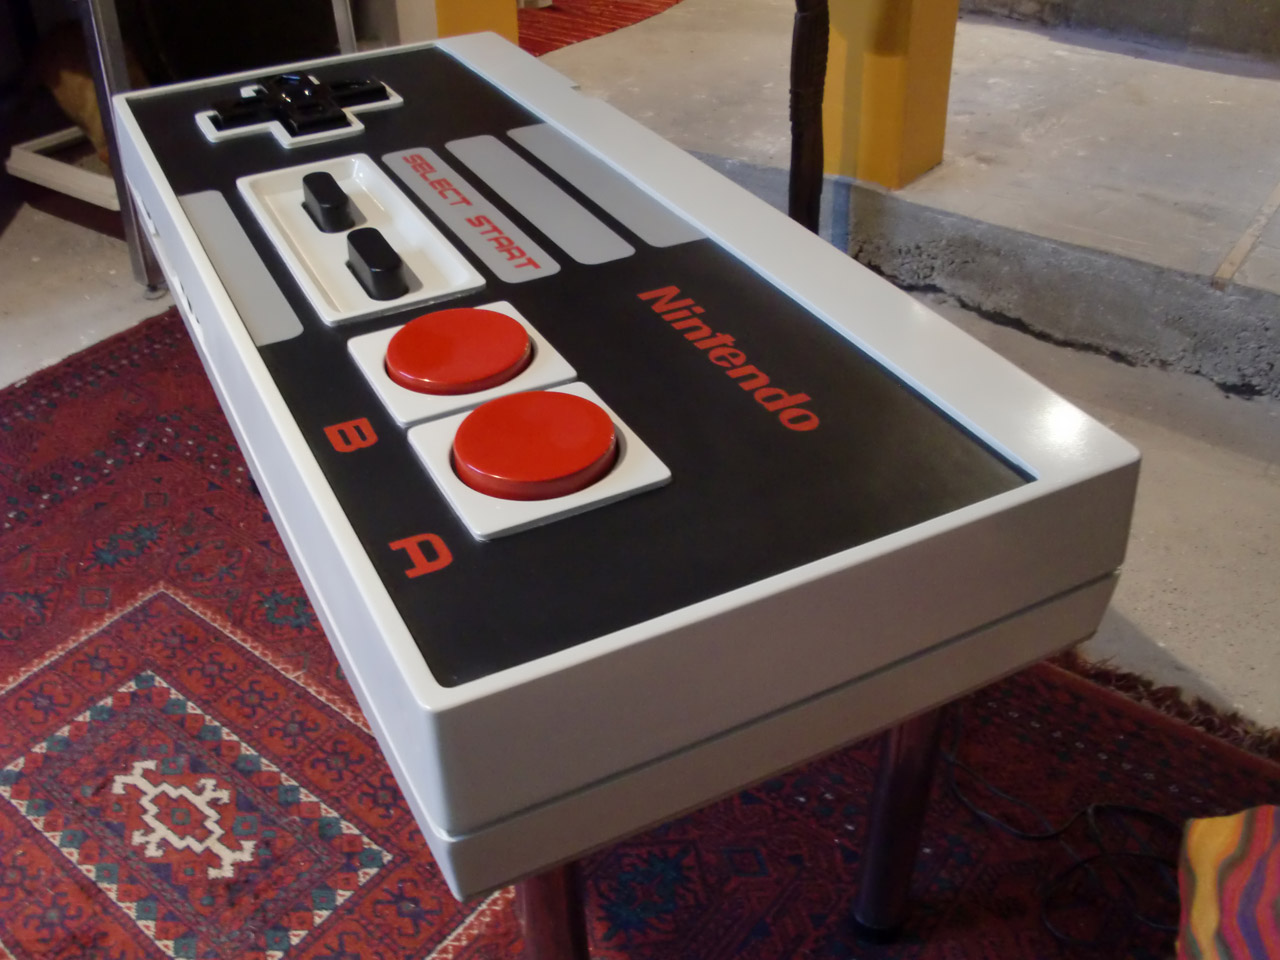 Une Manette De SuperNes Gante Qui Sert De Table